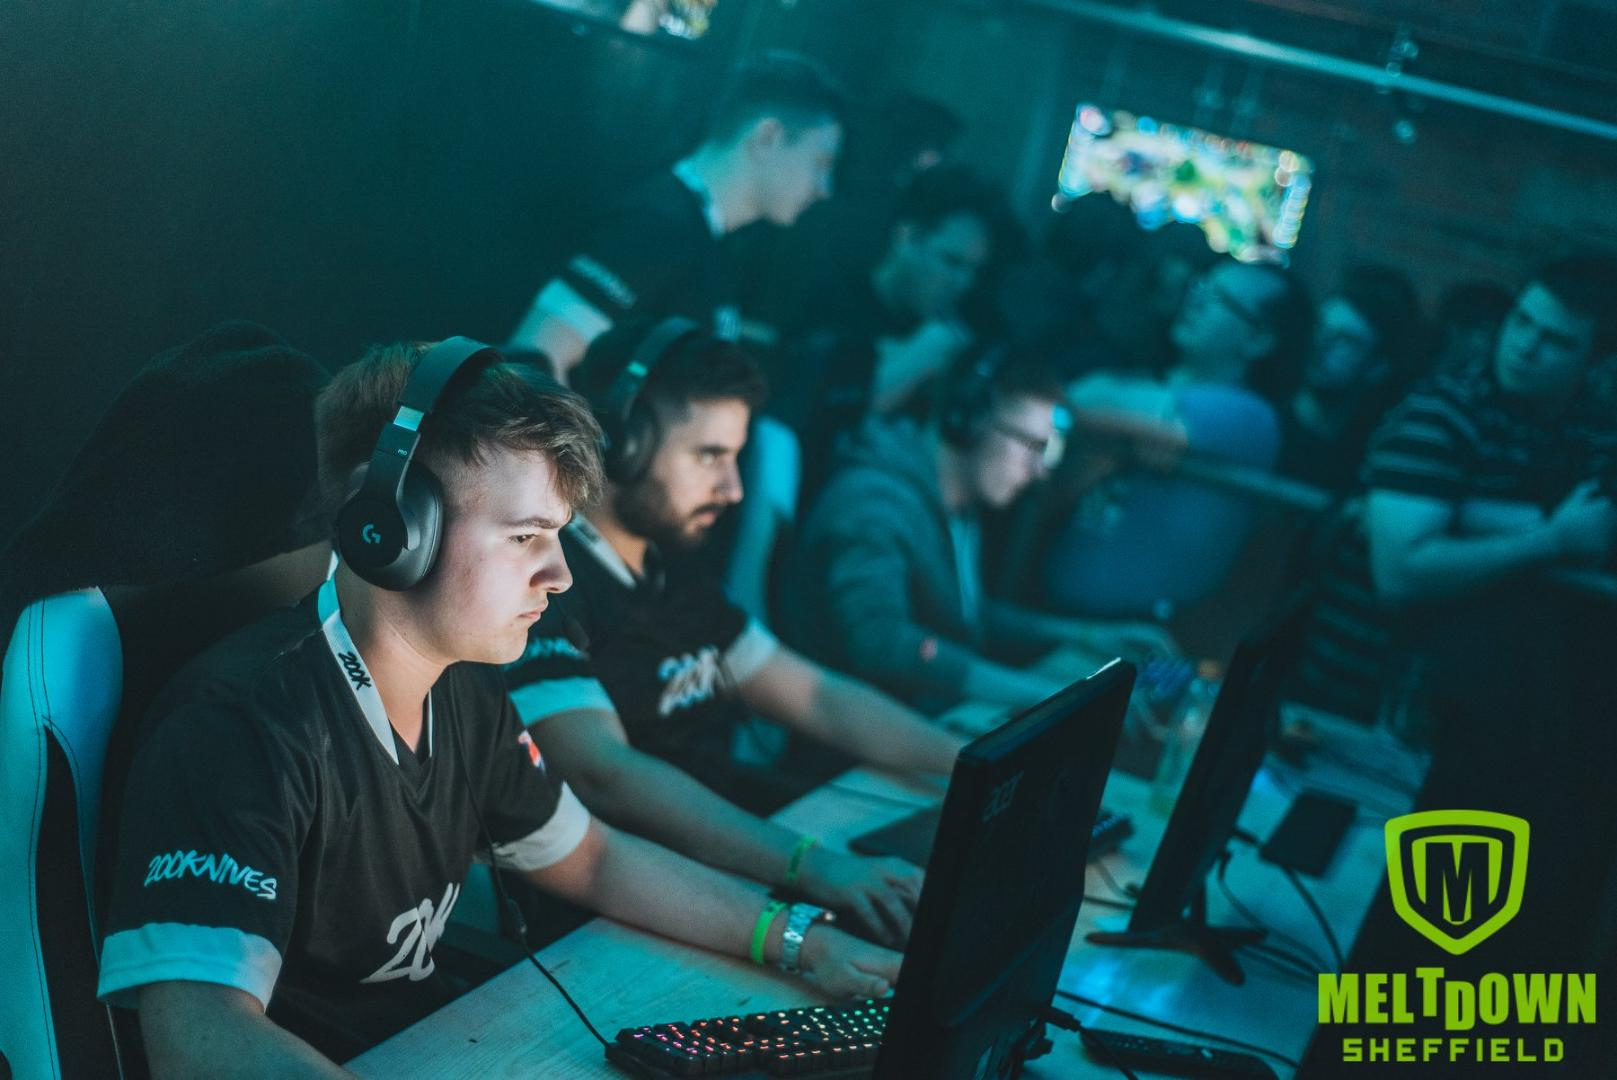 A picture of a group of people competing on a video game at Meltdown eSports Bar Sheffield.